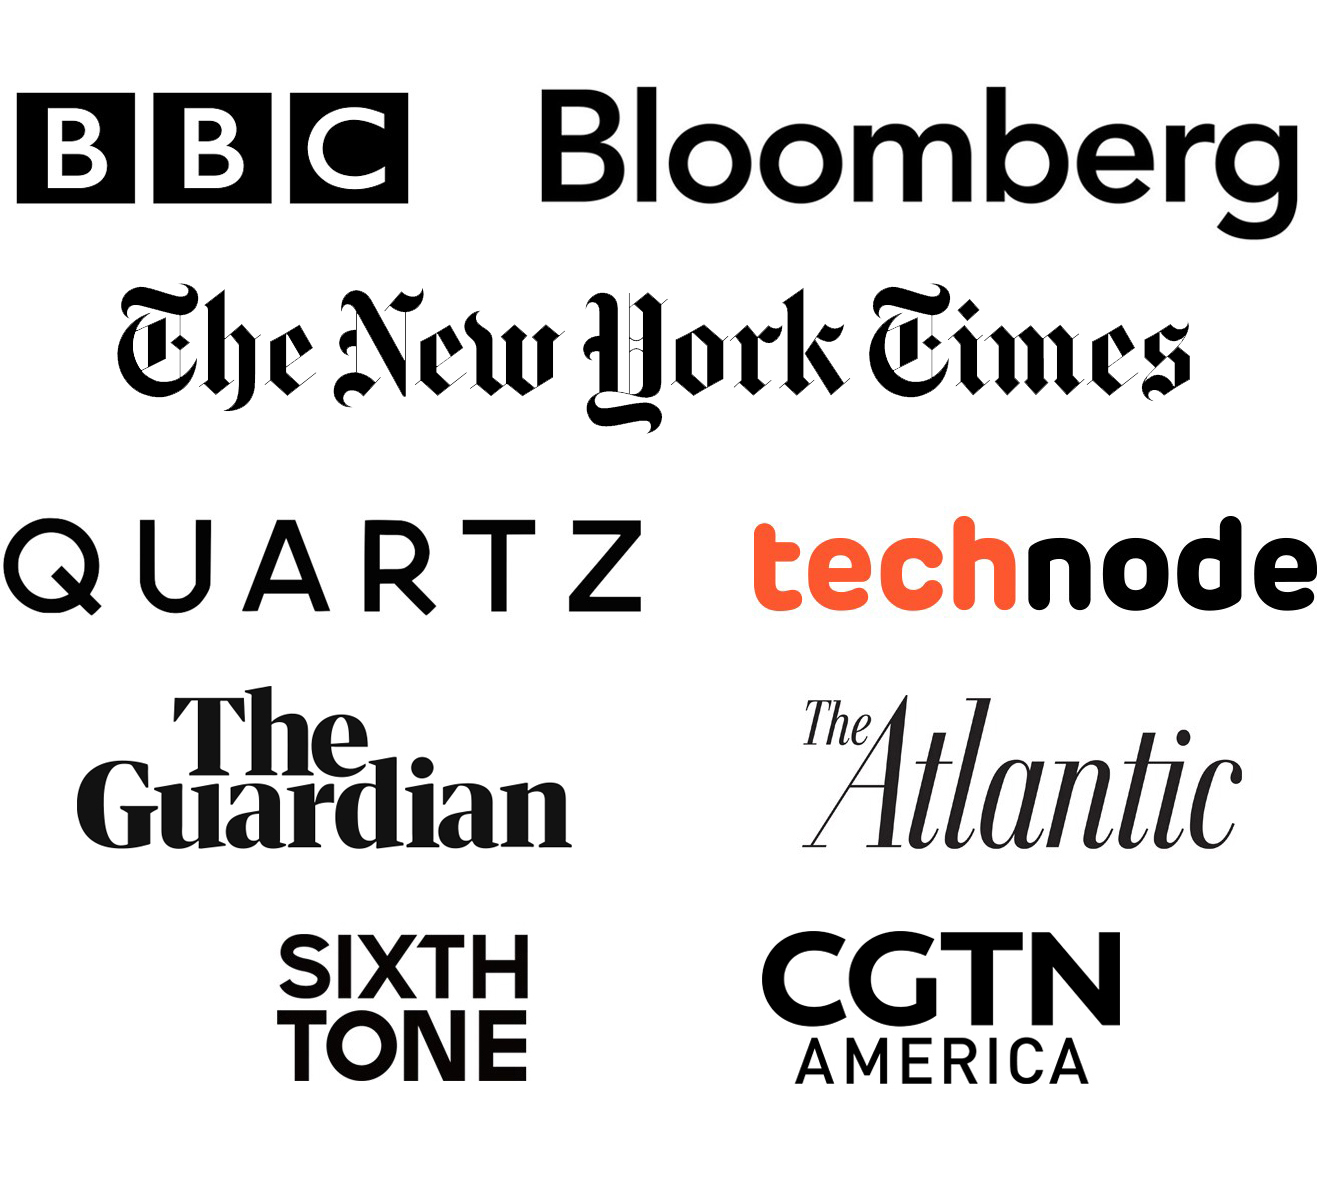 RADII has been cited in The New York Times, Quartz, The Guardian, the BBC, and more | RADII China